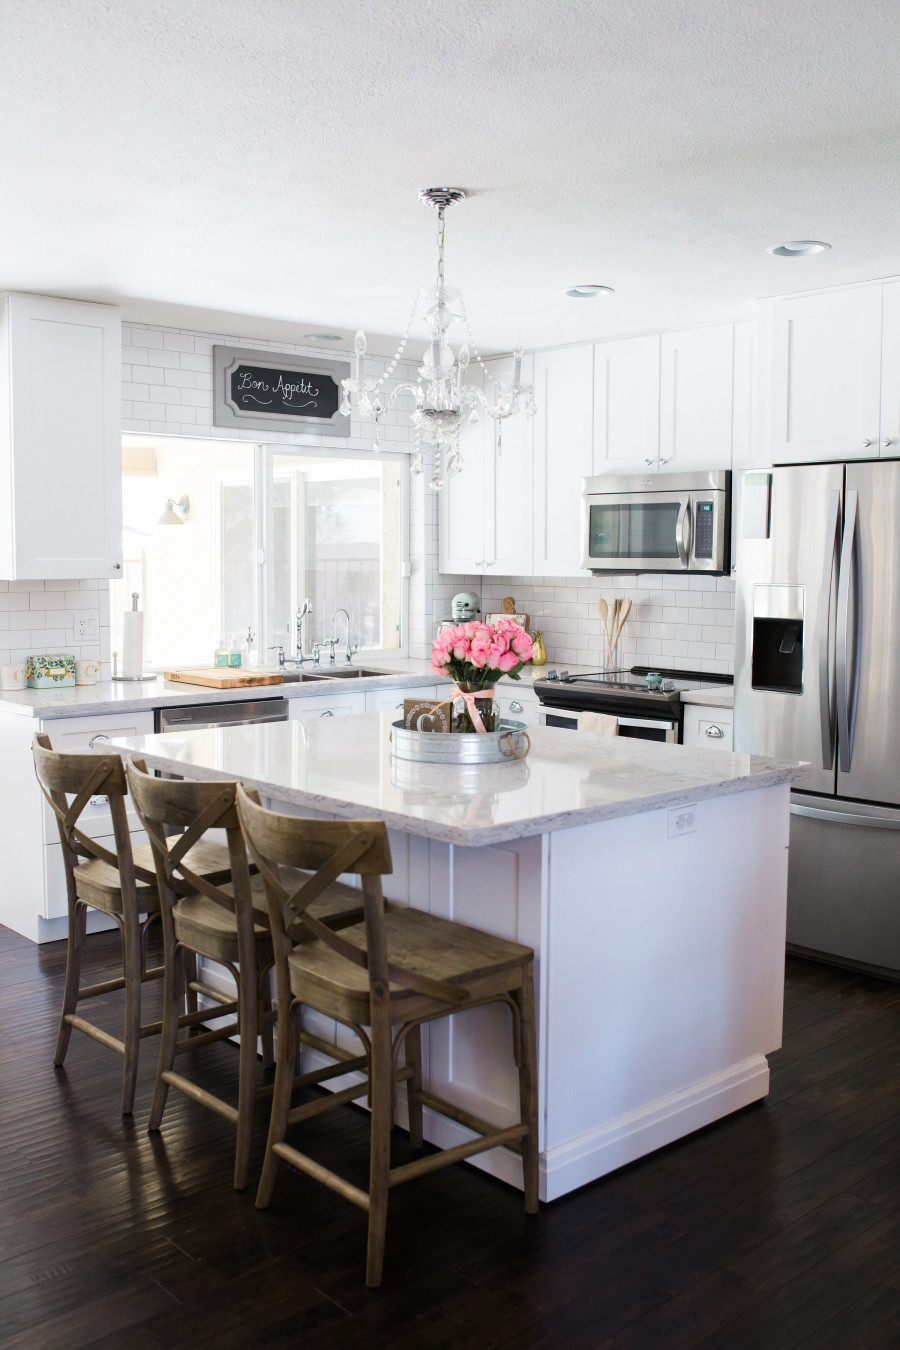 Kitchen Remodeling Budgets  Kitchen remodel on a bud for under $10 000 Sharing our